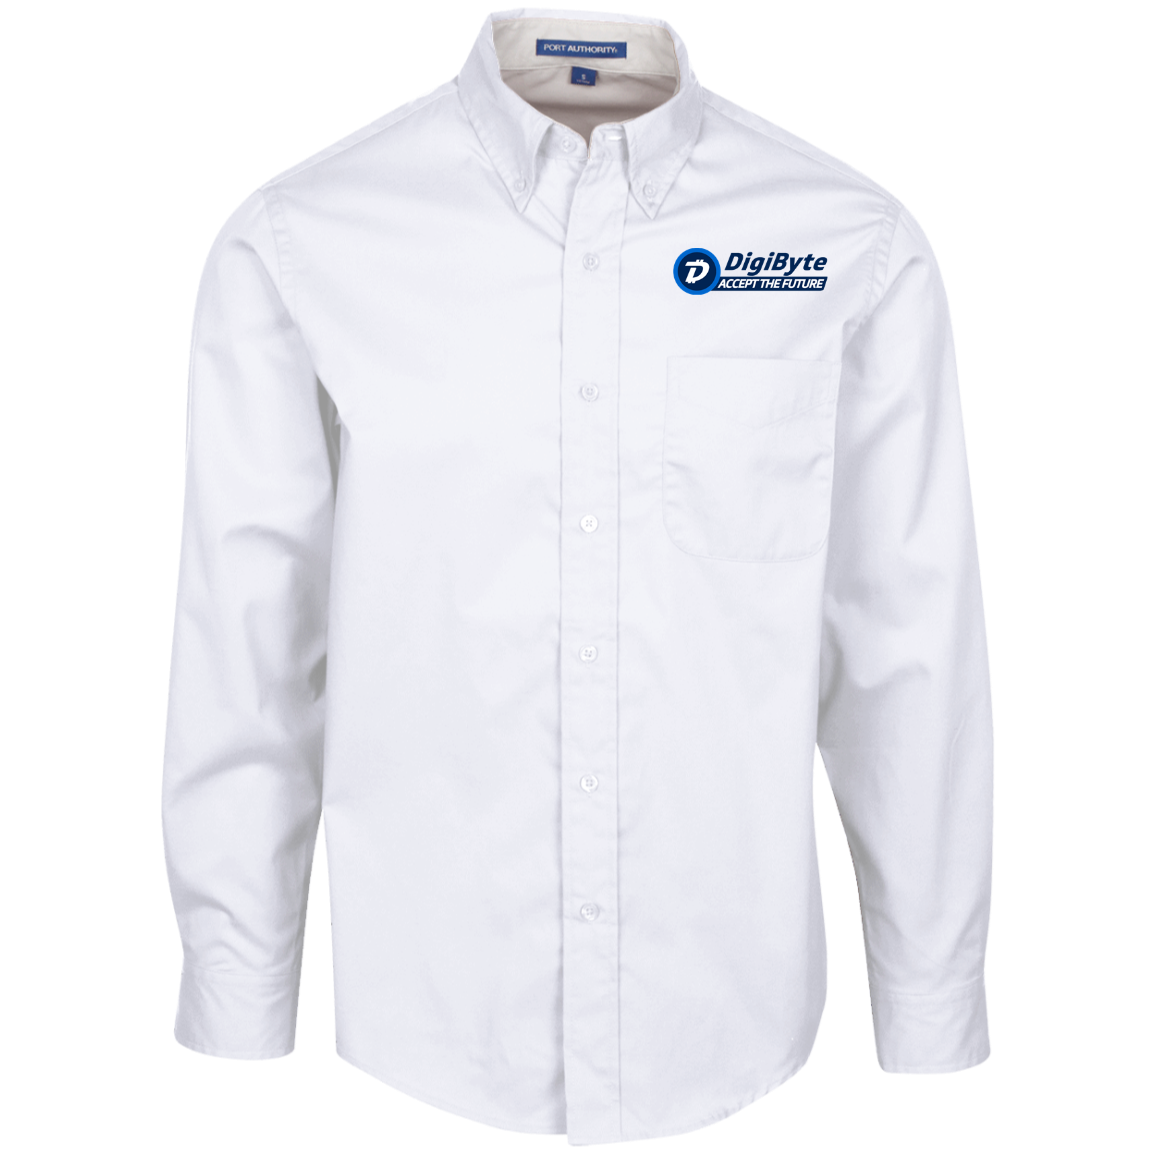 DigiByte Accept the Future – Embroidered Long Sleeve Shirt by Port Authority